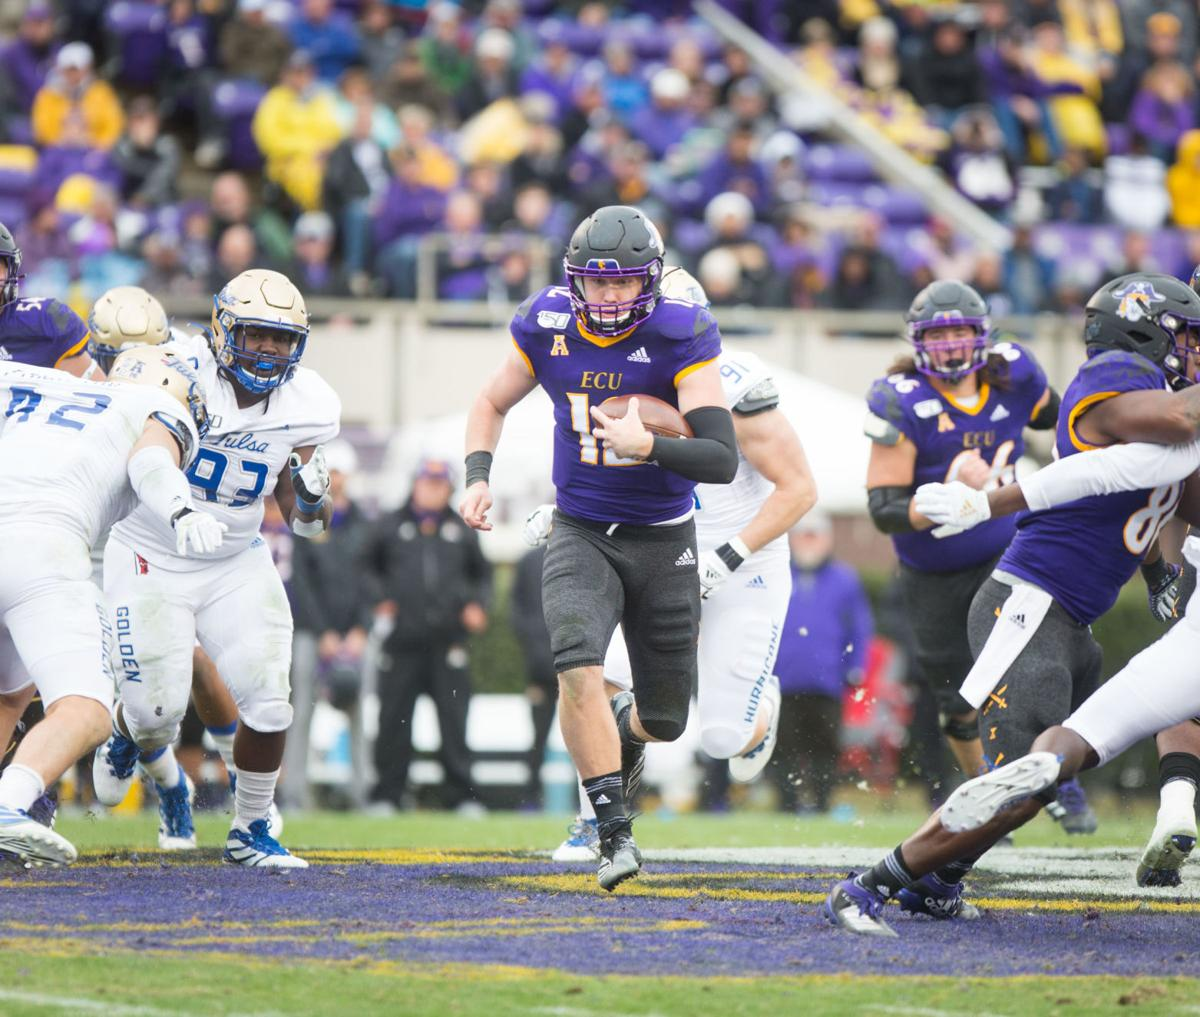 ECU Football-Ahlers run